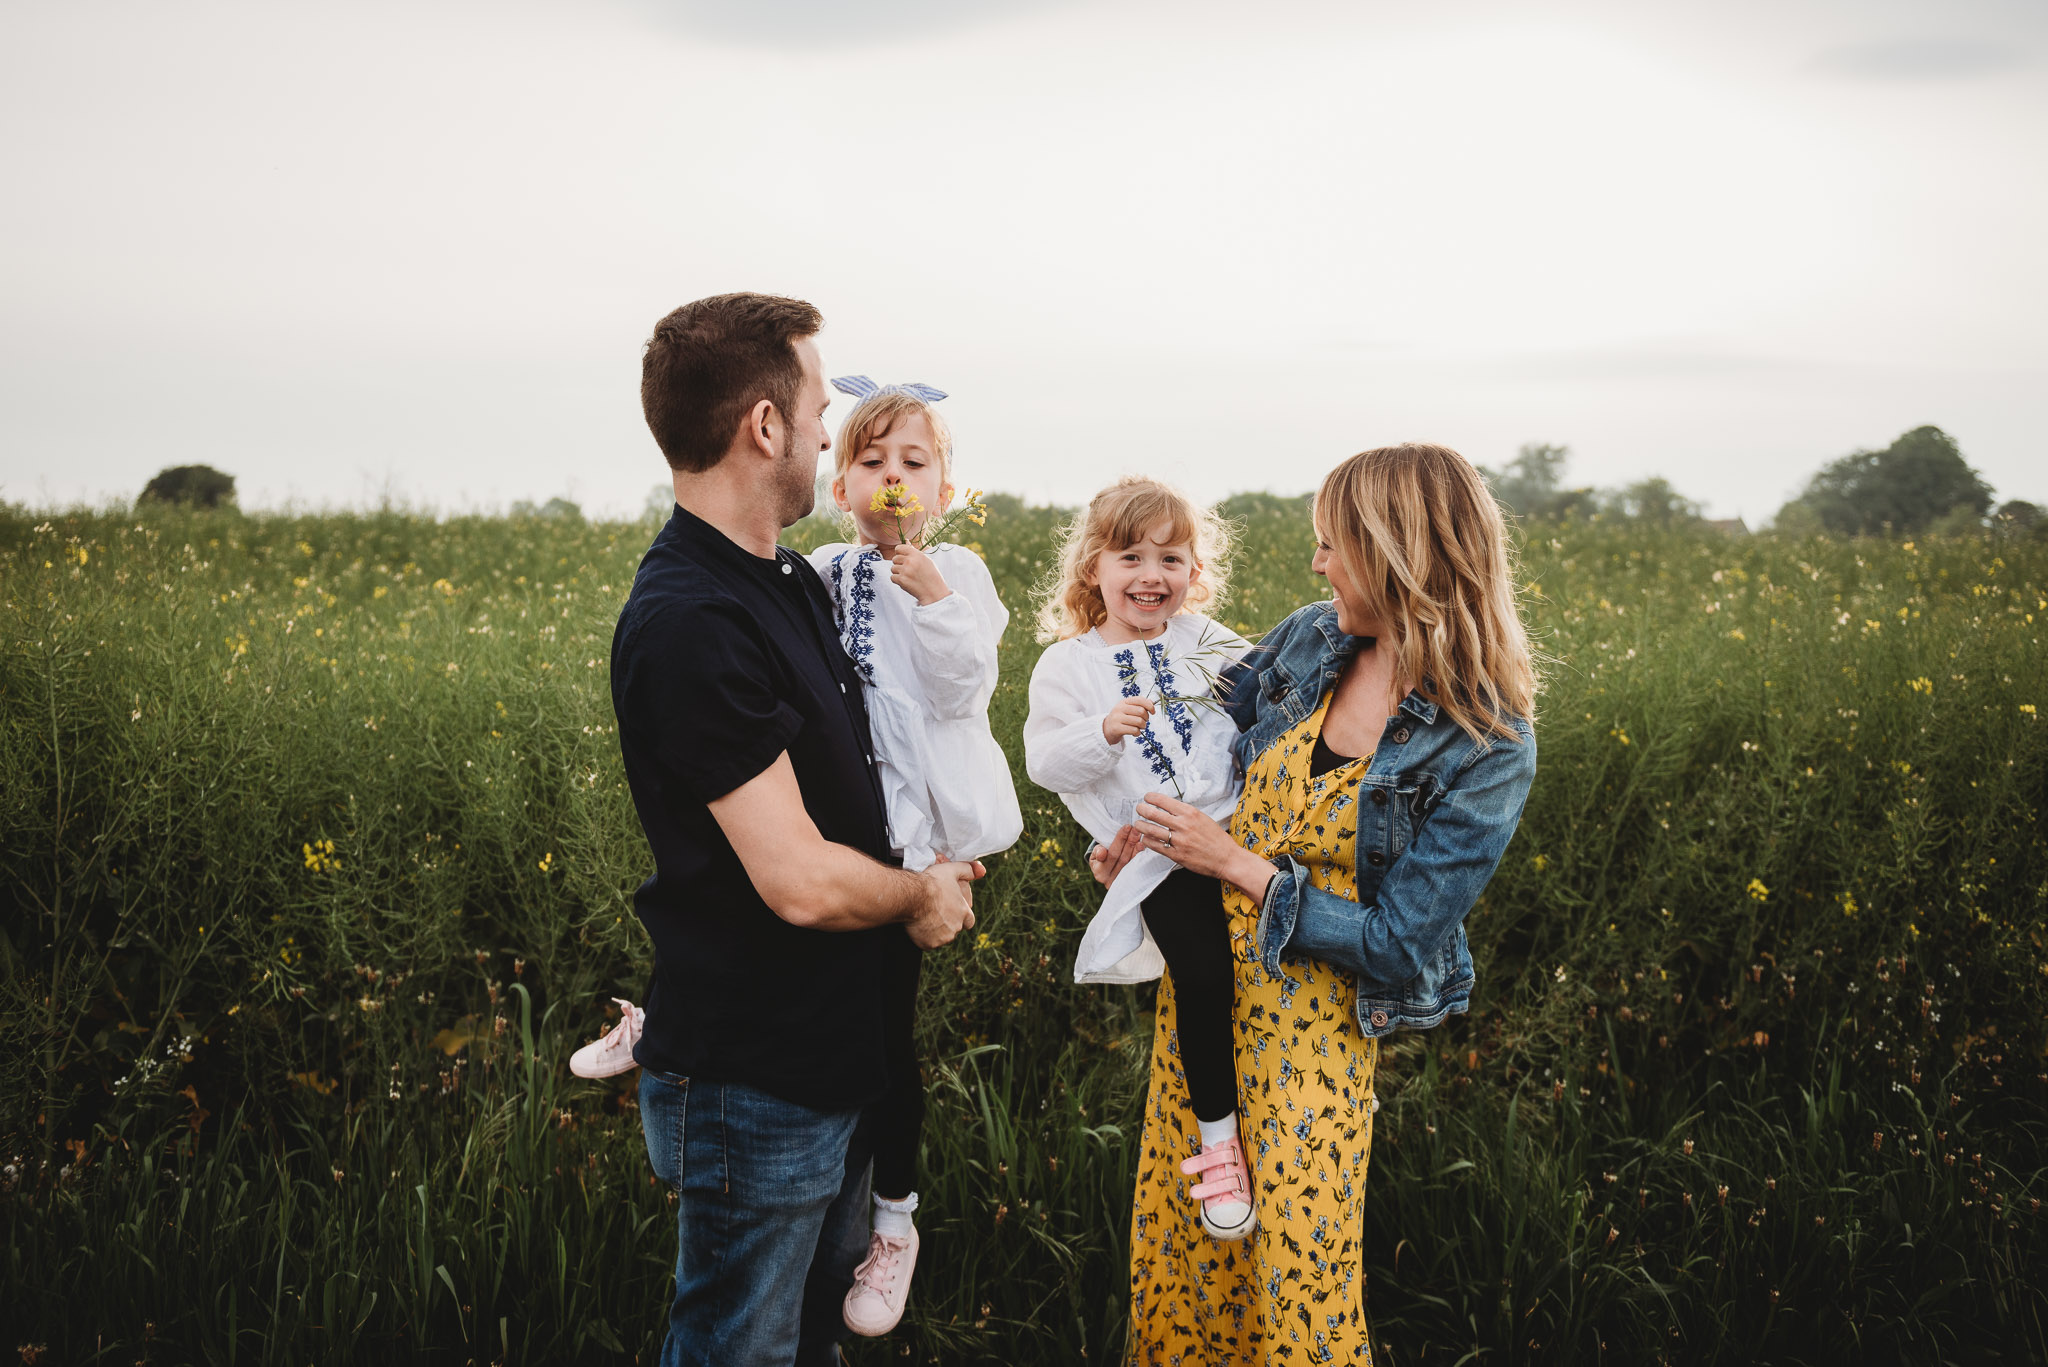 cambridgeshire family photographer-16.jpg